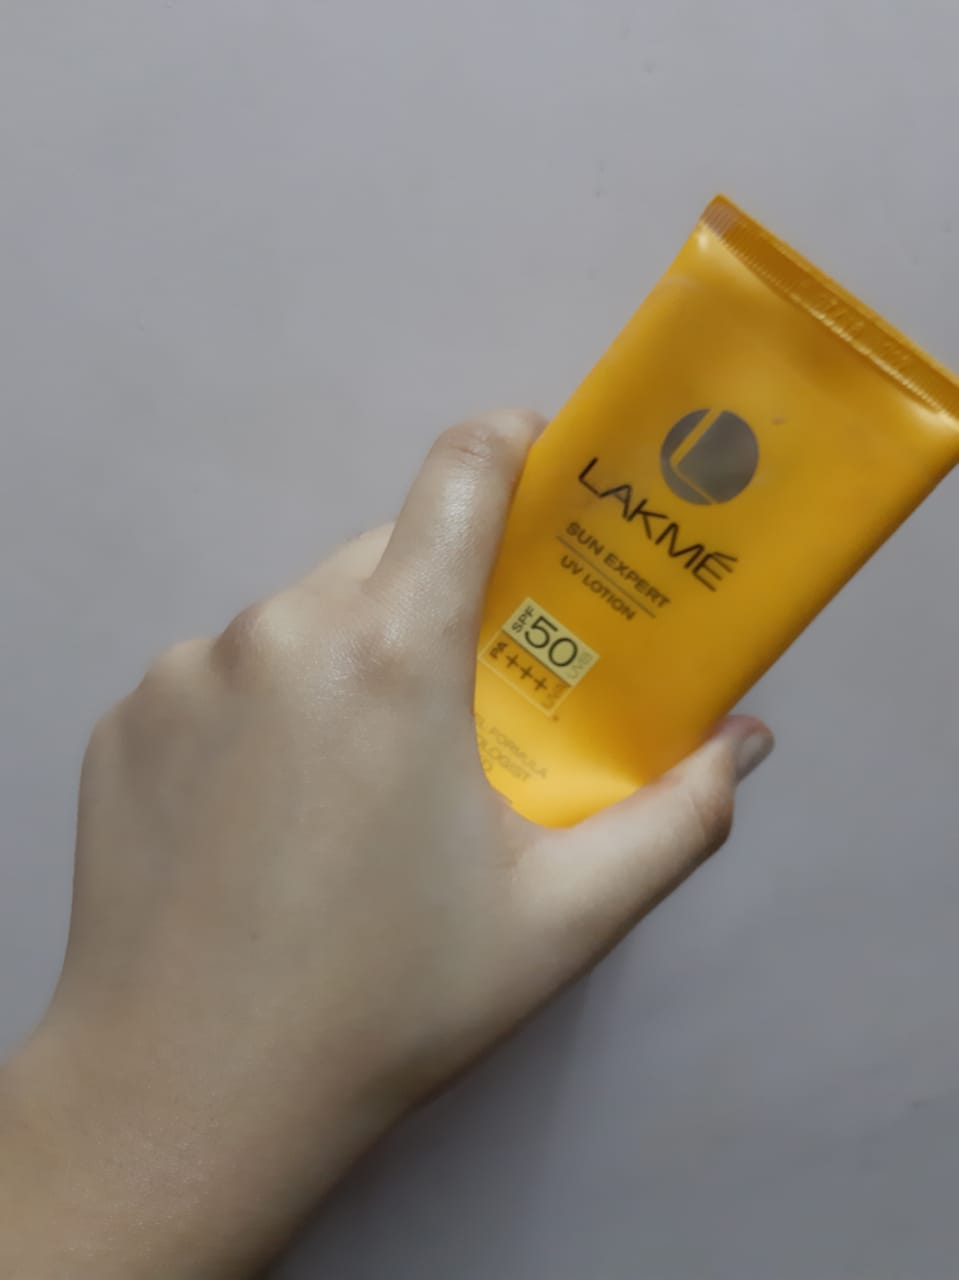 Lakme Sun Expert UV Lotion SPF 50 PA+++-Best sunscreen for oily skin-By sobia_saman-1